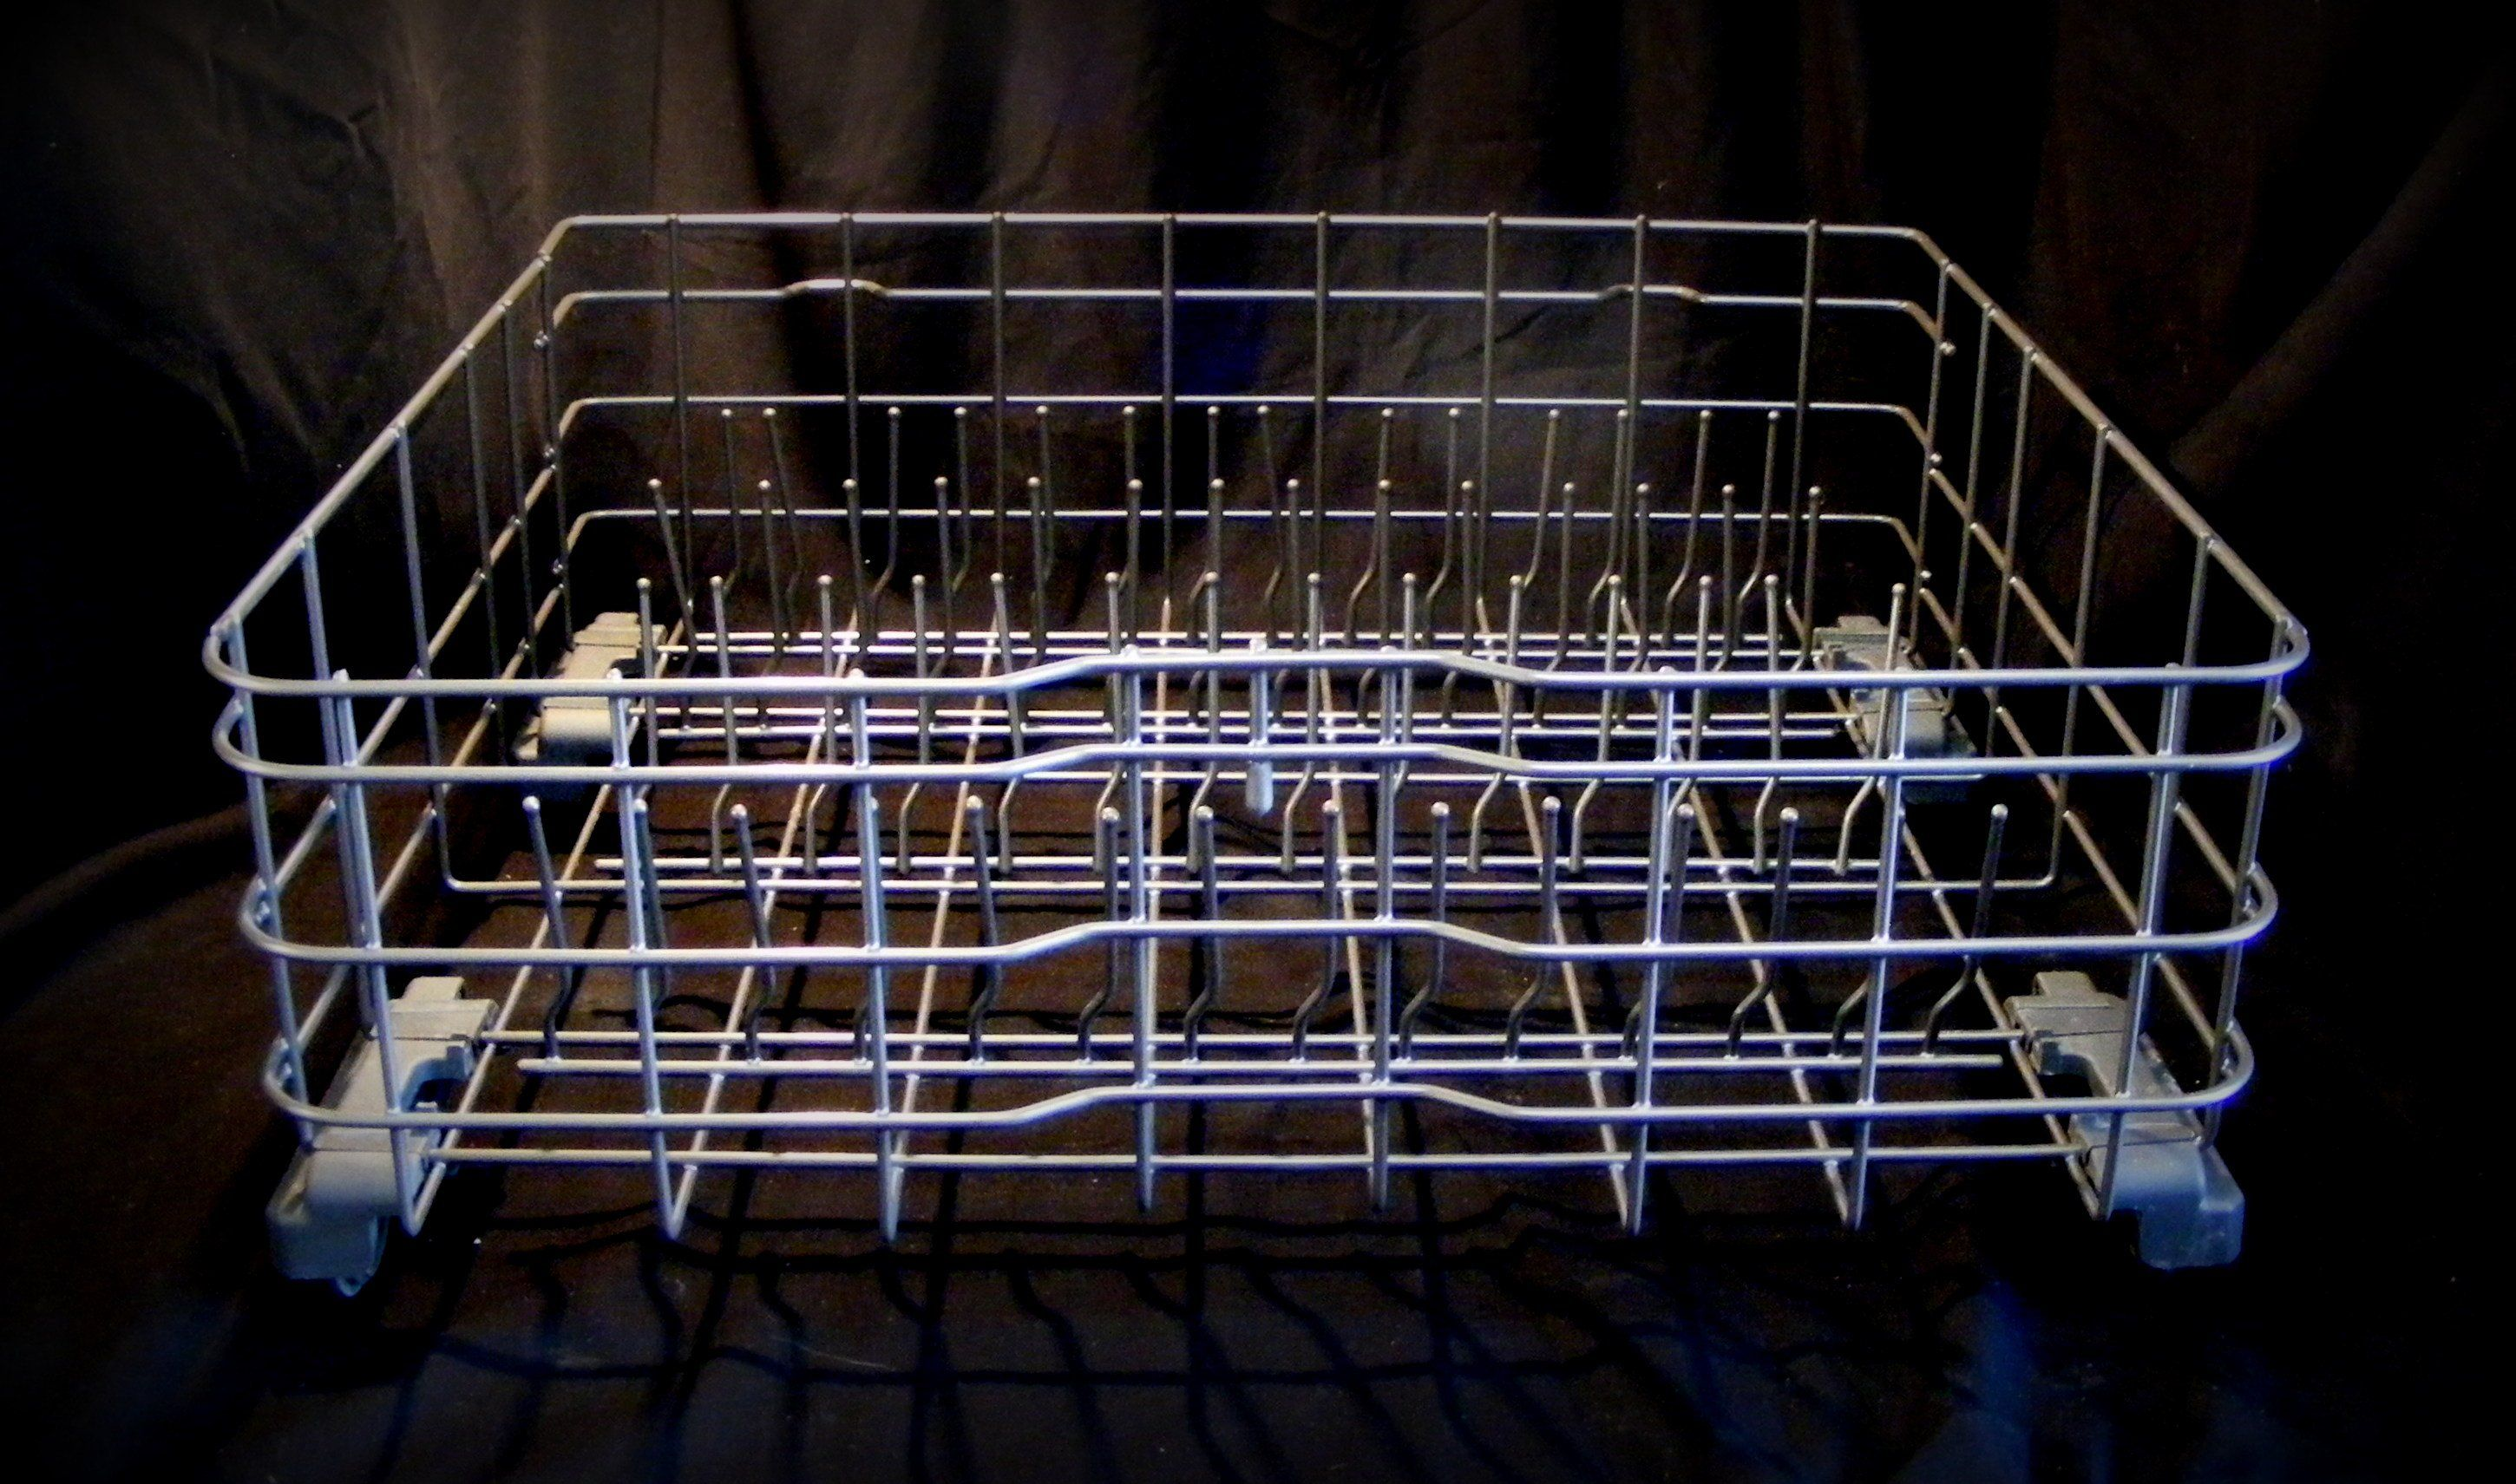 Wd28x10349 Ge Dishwasher Gray Lower Dish Rack Ge Dishwasher Dish Racks Best Appliances